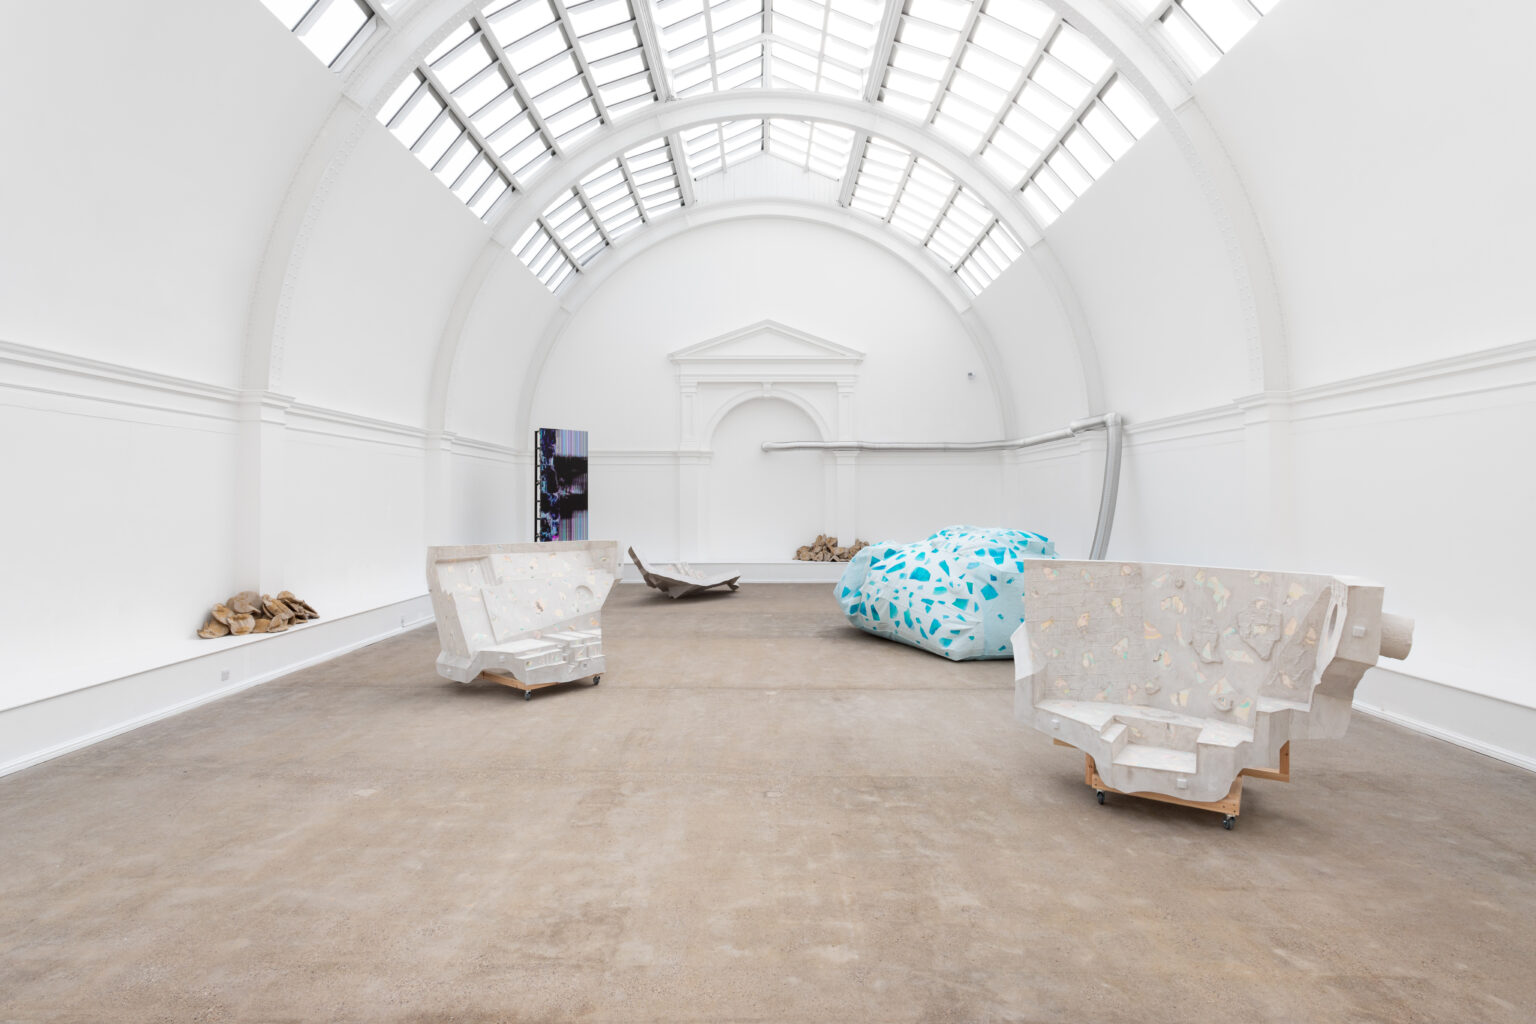 An image showing the full installation from a central perspective, with a grouping of sculptures and a clear view of the glass ceiling.